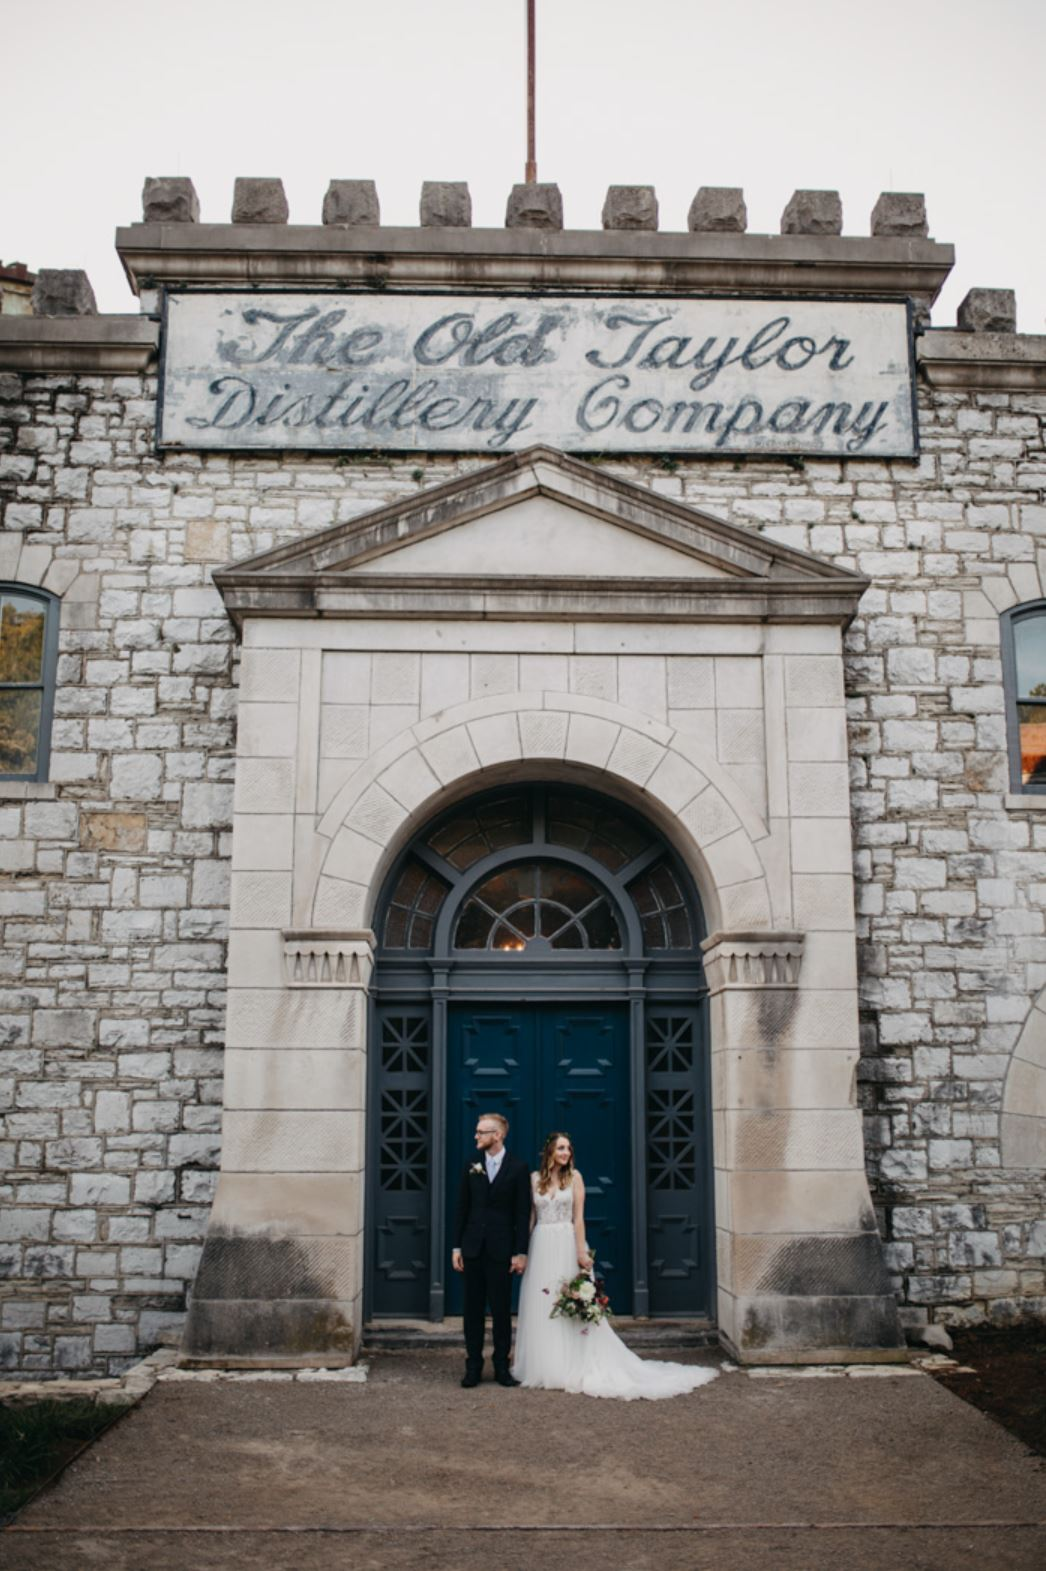 A wedding couple is standing in front of the Castle & Key Distillery in Kentucky.